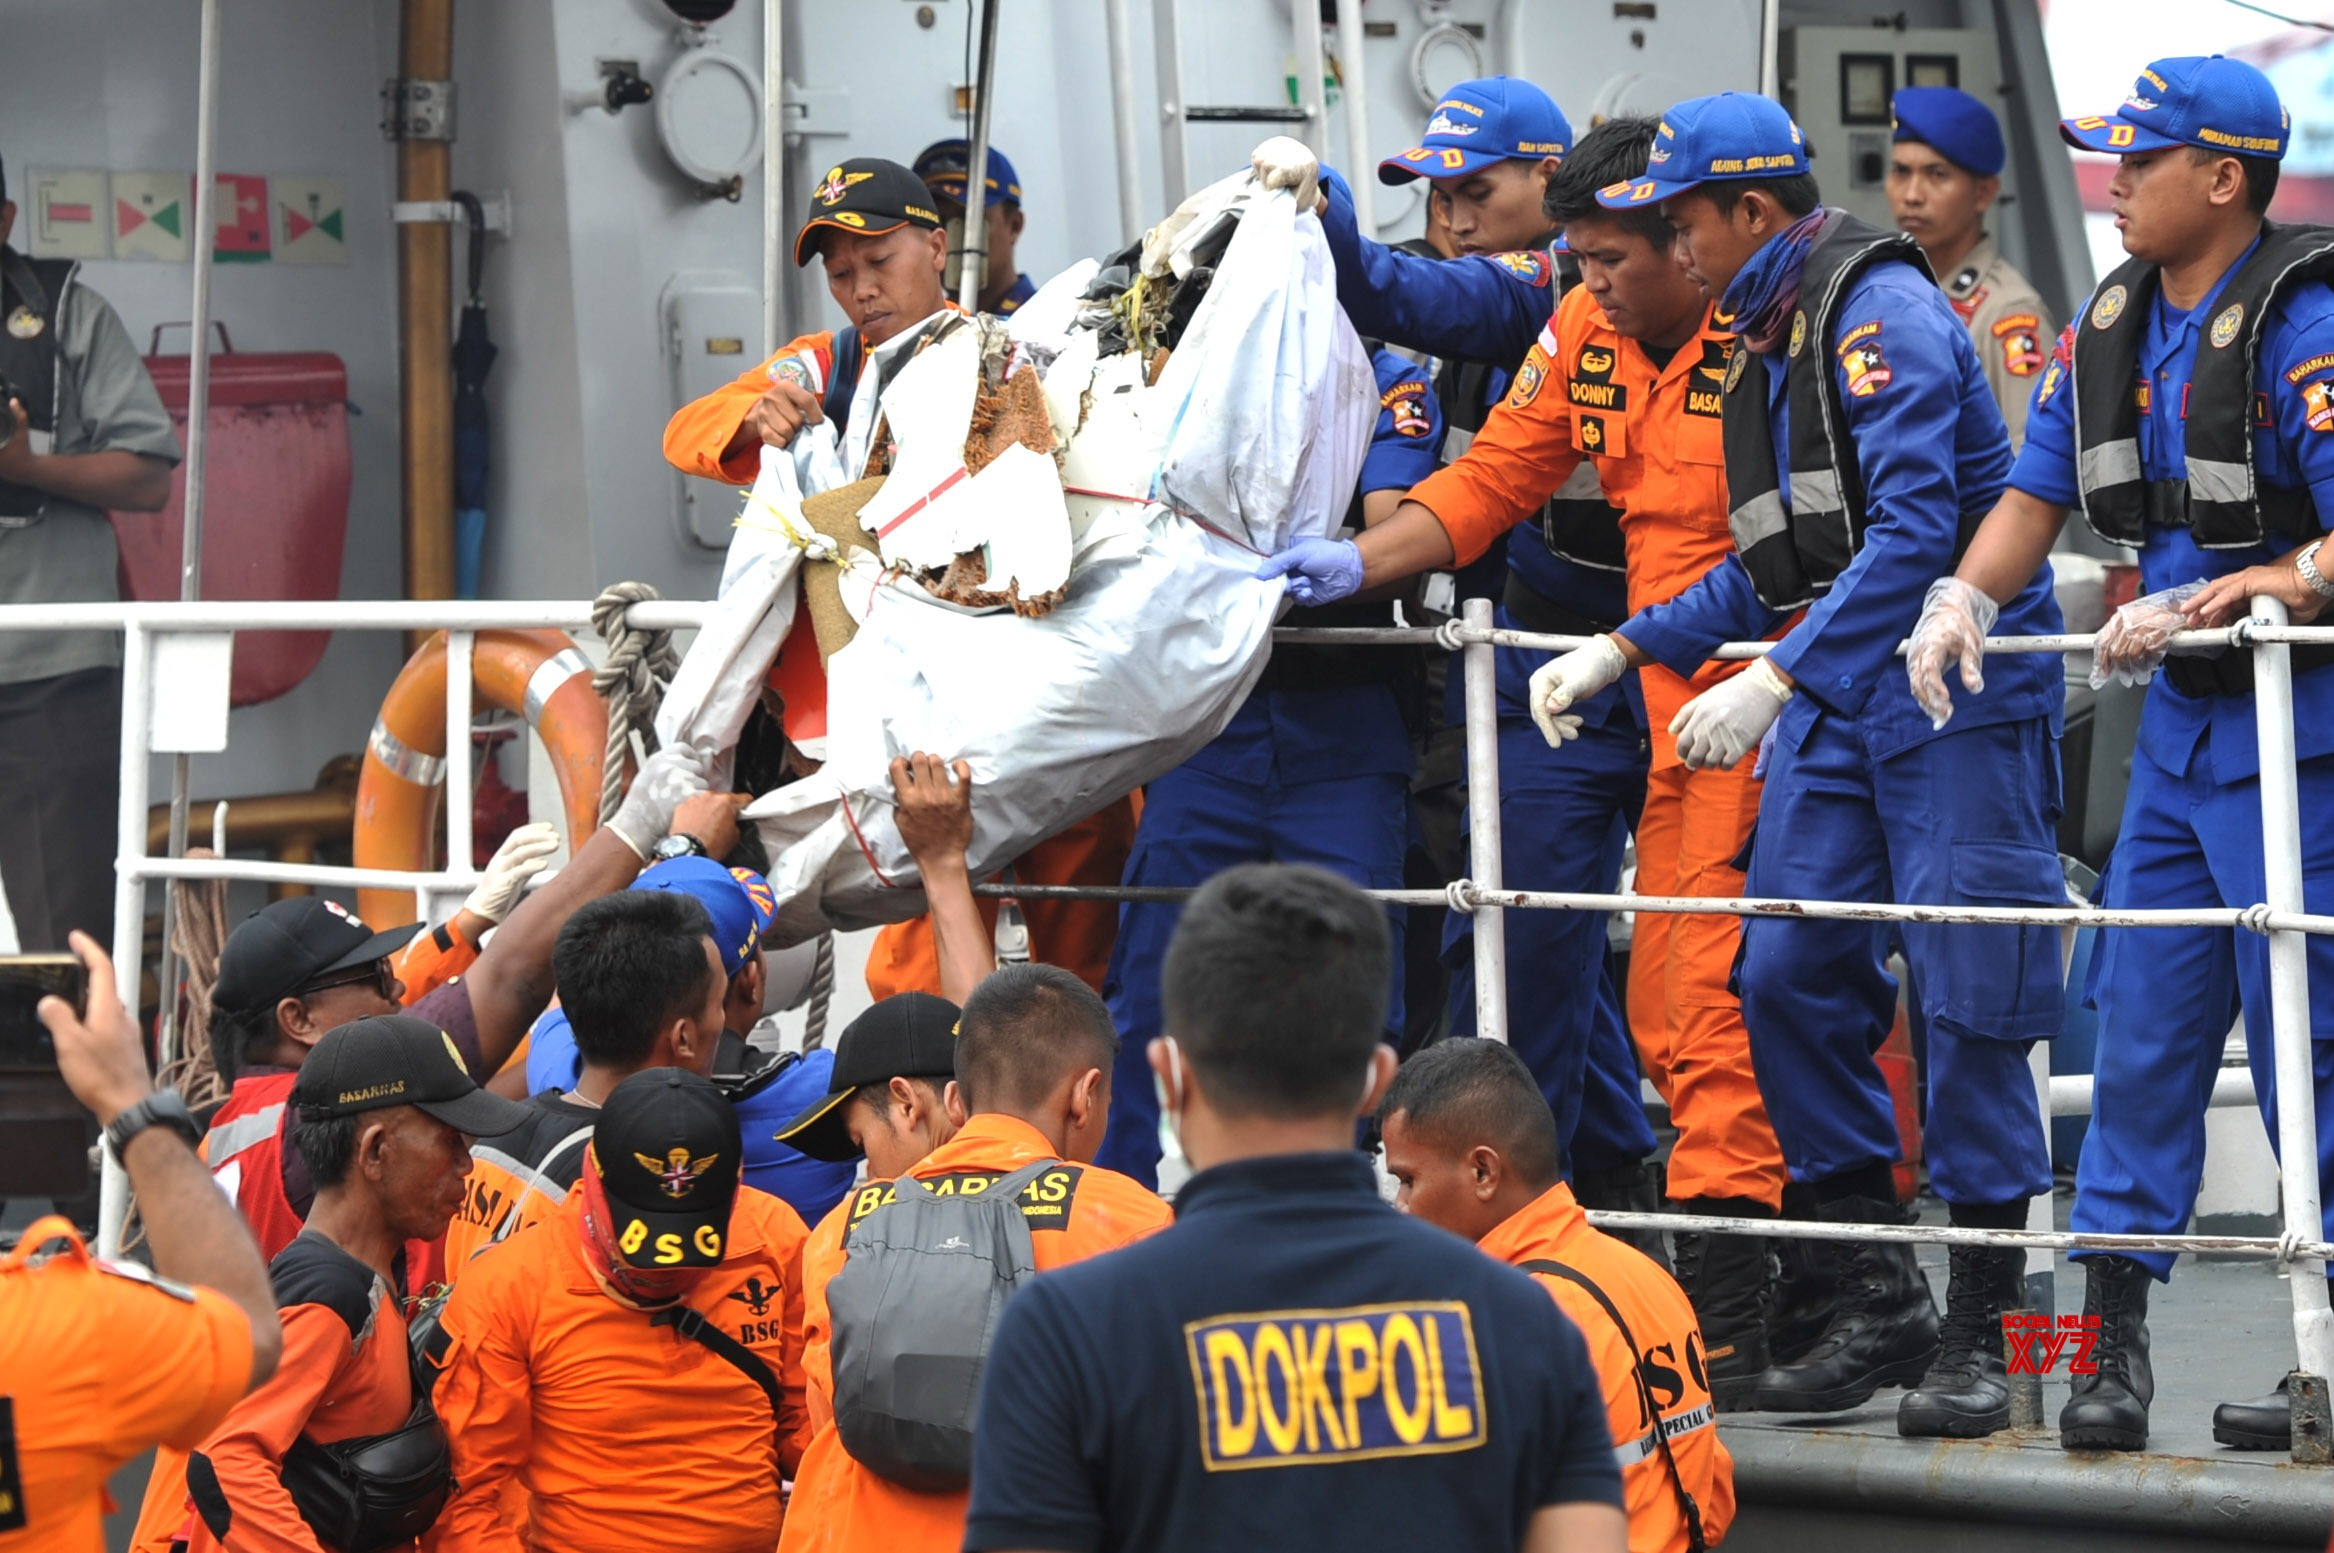 Indonesia widens search area for crashed plane wreckage, victims